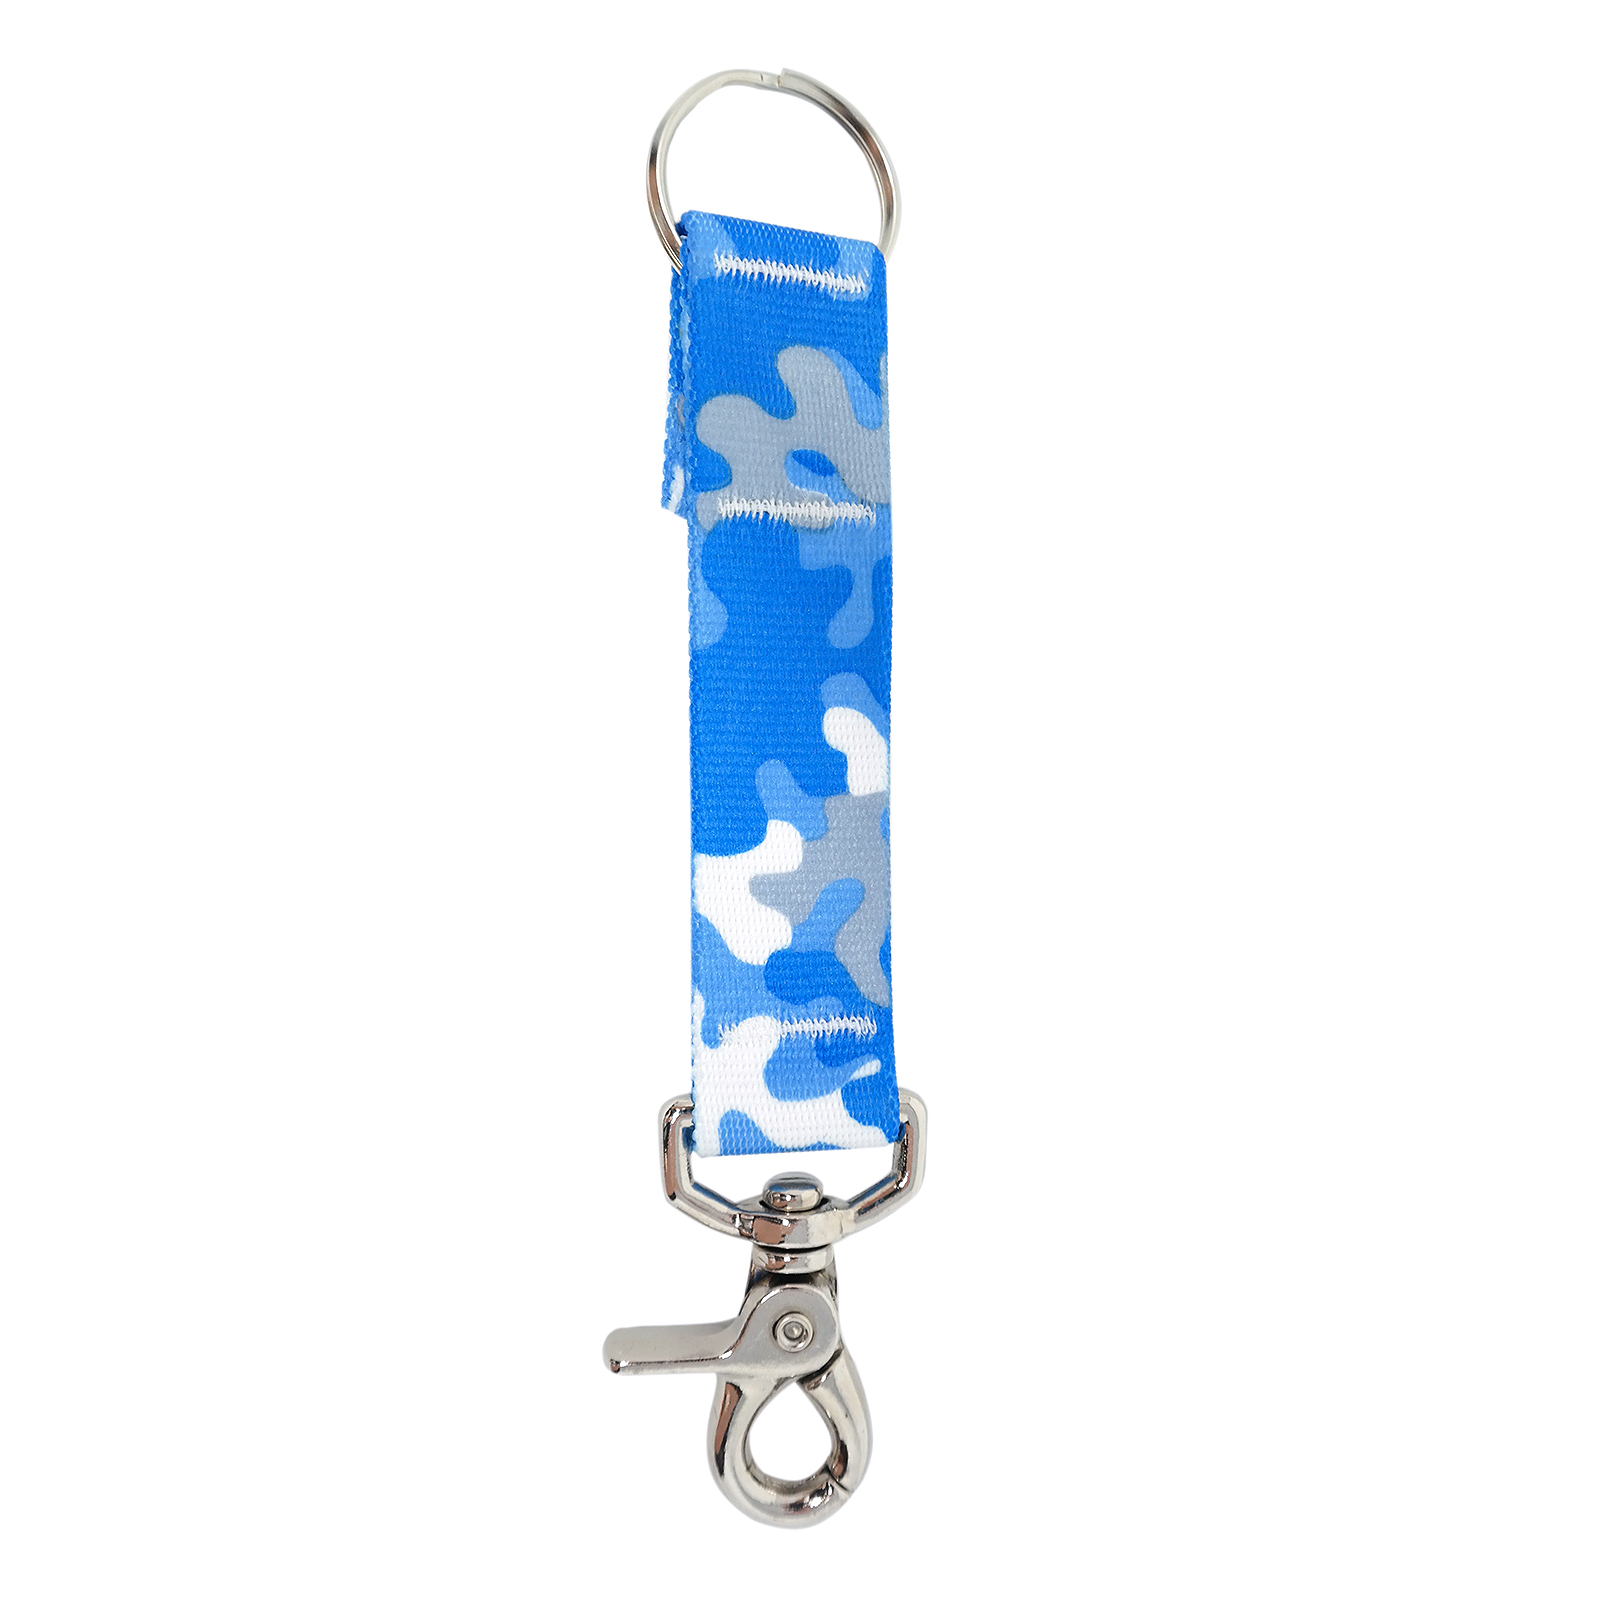 Light Blue & Grey Camo keychain